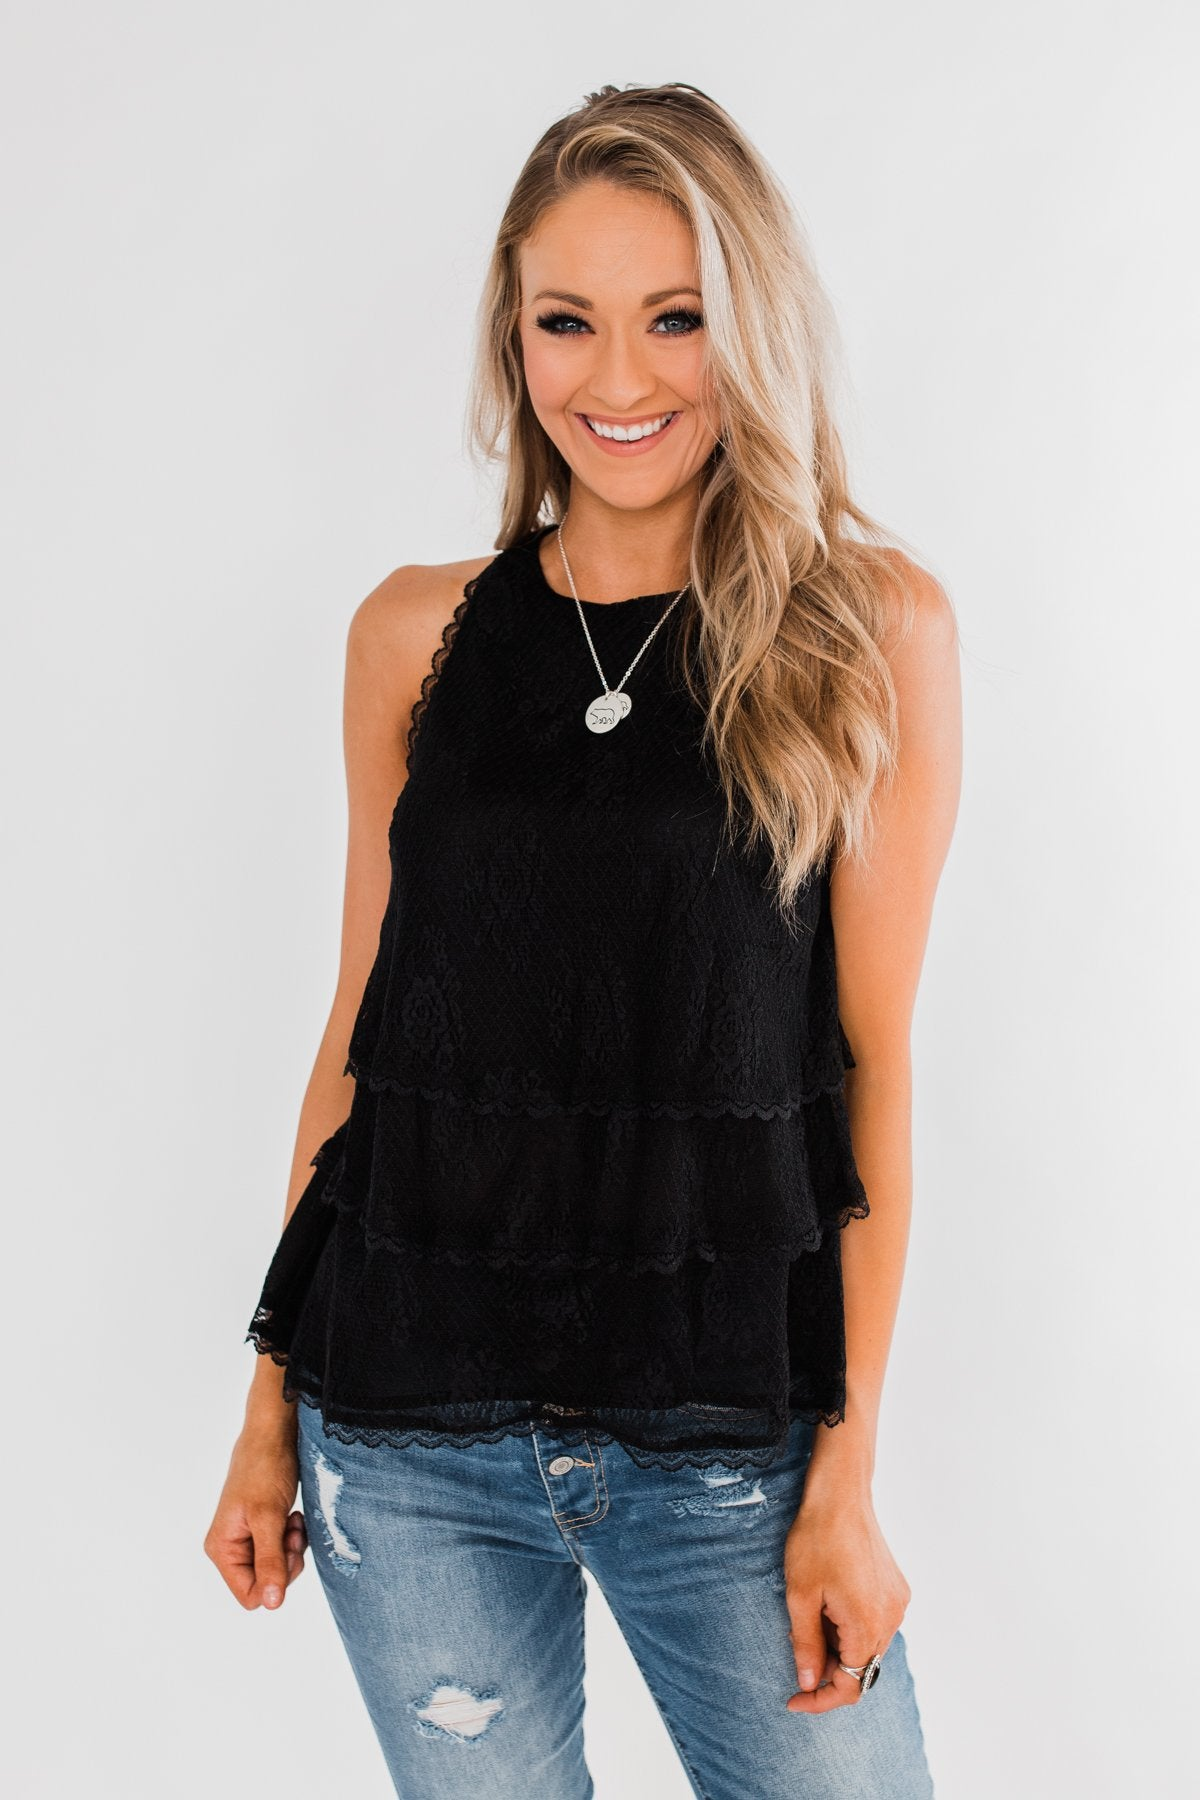 Captivating In Lace Ruffle Tank Top- Black